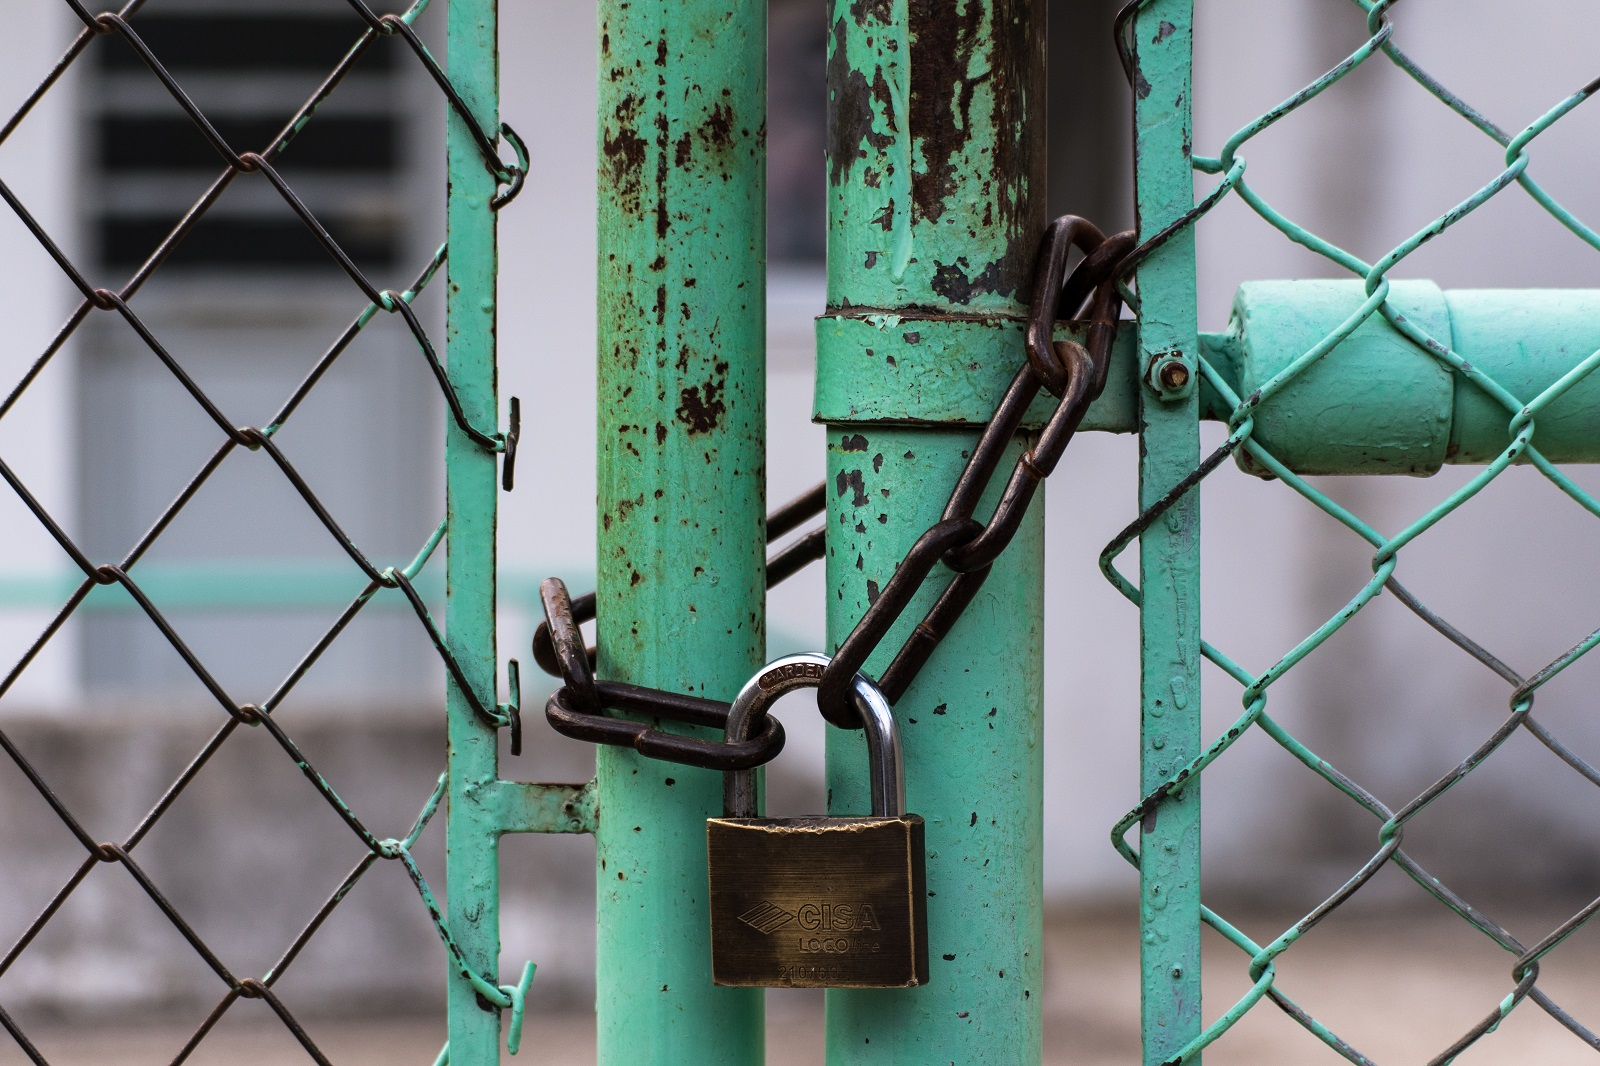 A picture of a closed gate with a padlock